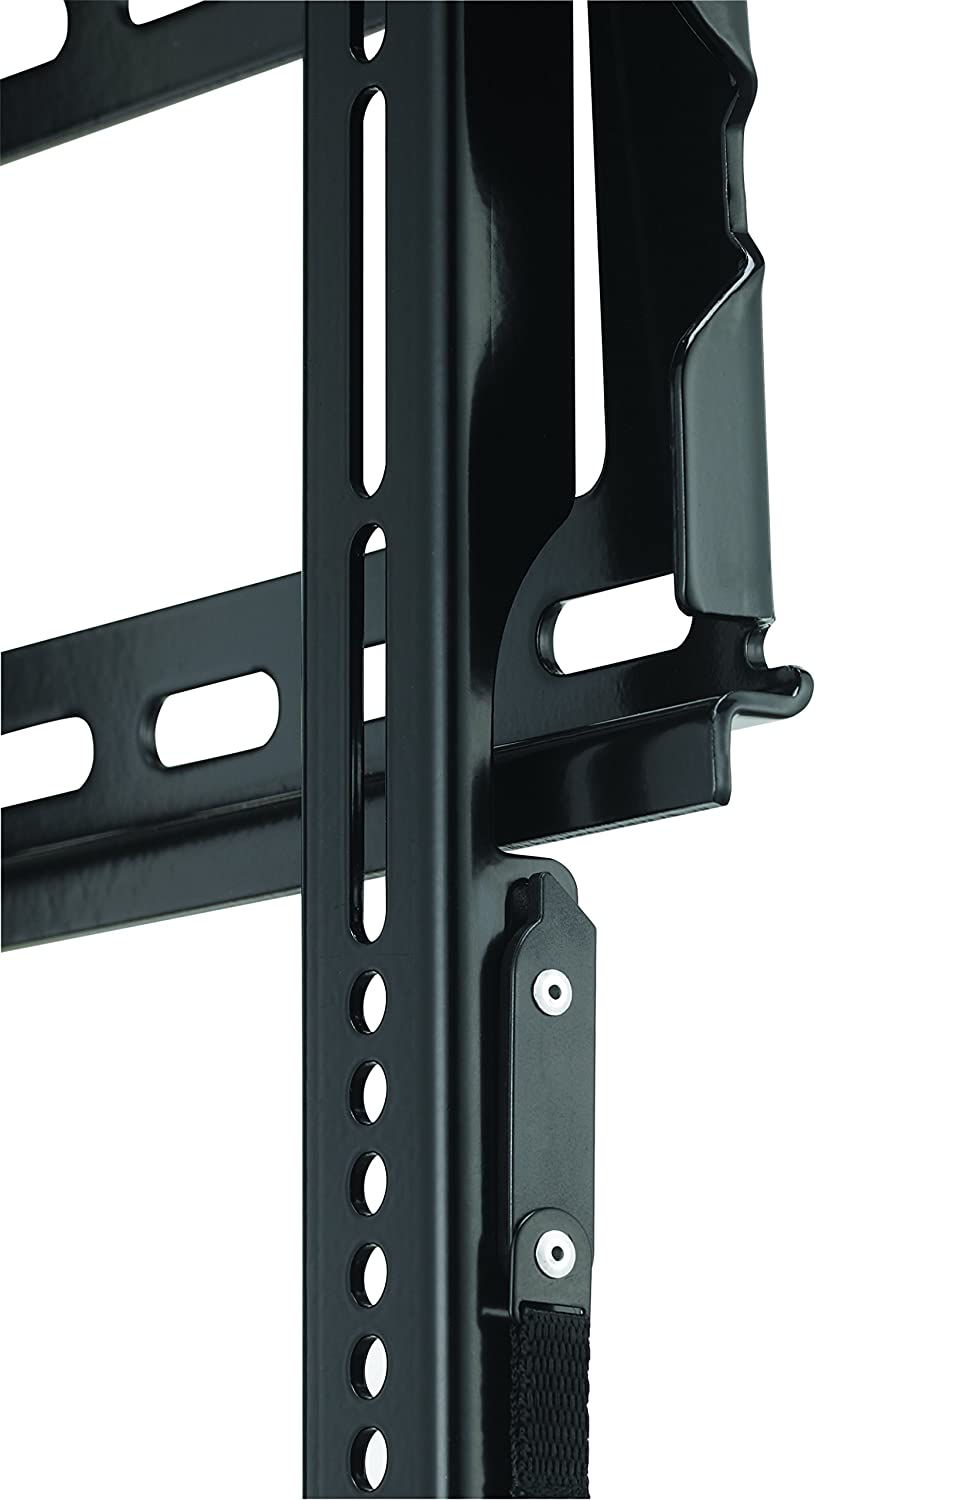 Sanus Super Low Profile TV Wall Mount For 37 80 LED LCD And Plasma Flat Curved Screen TVs Monitors